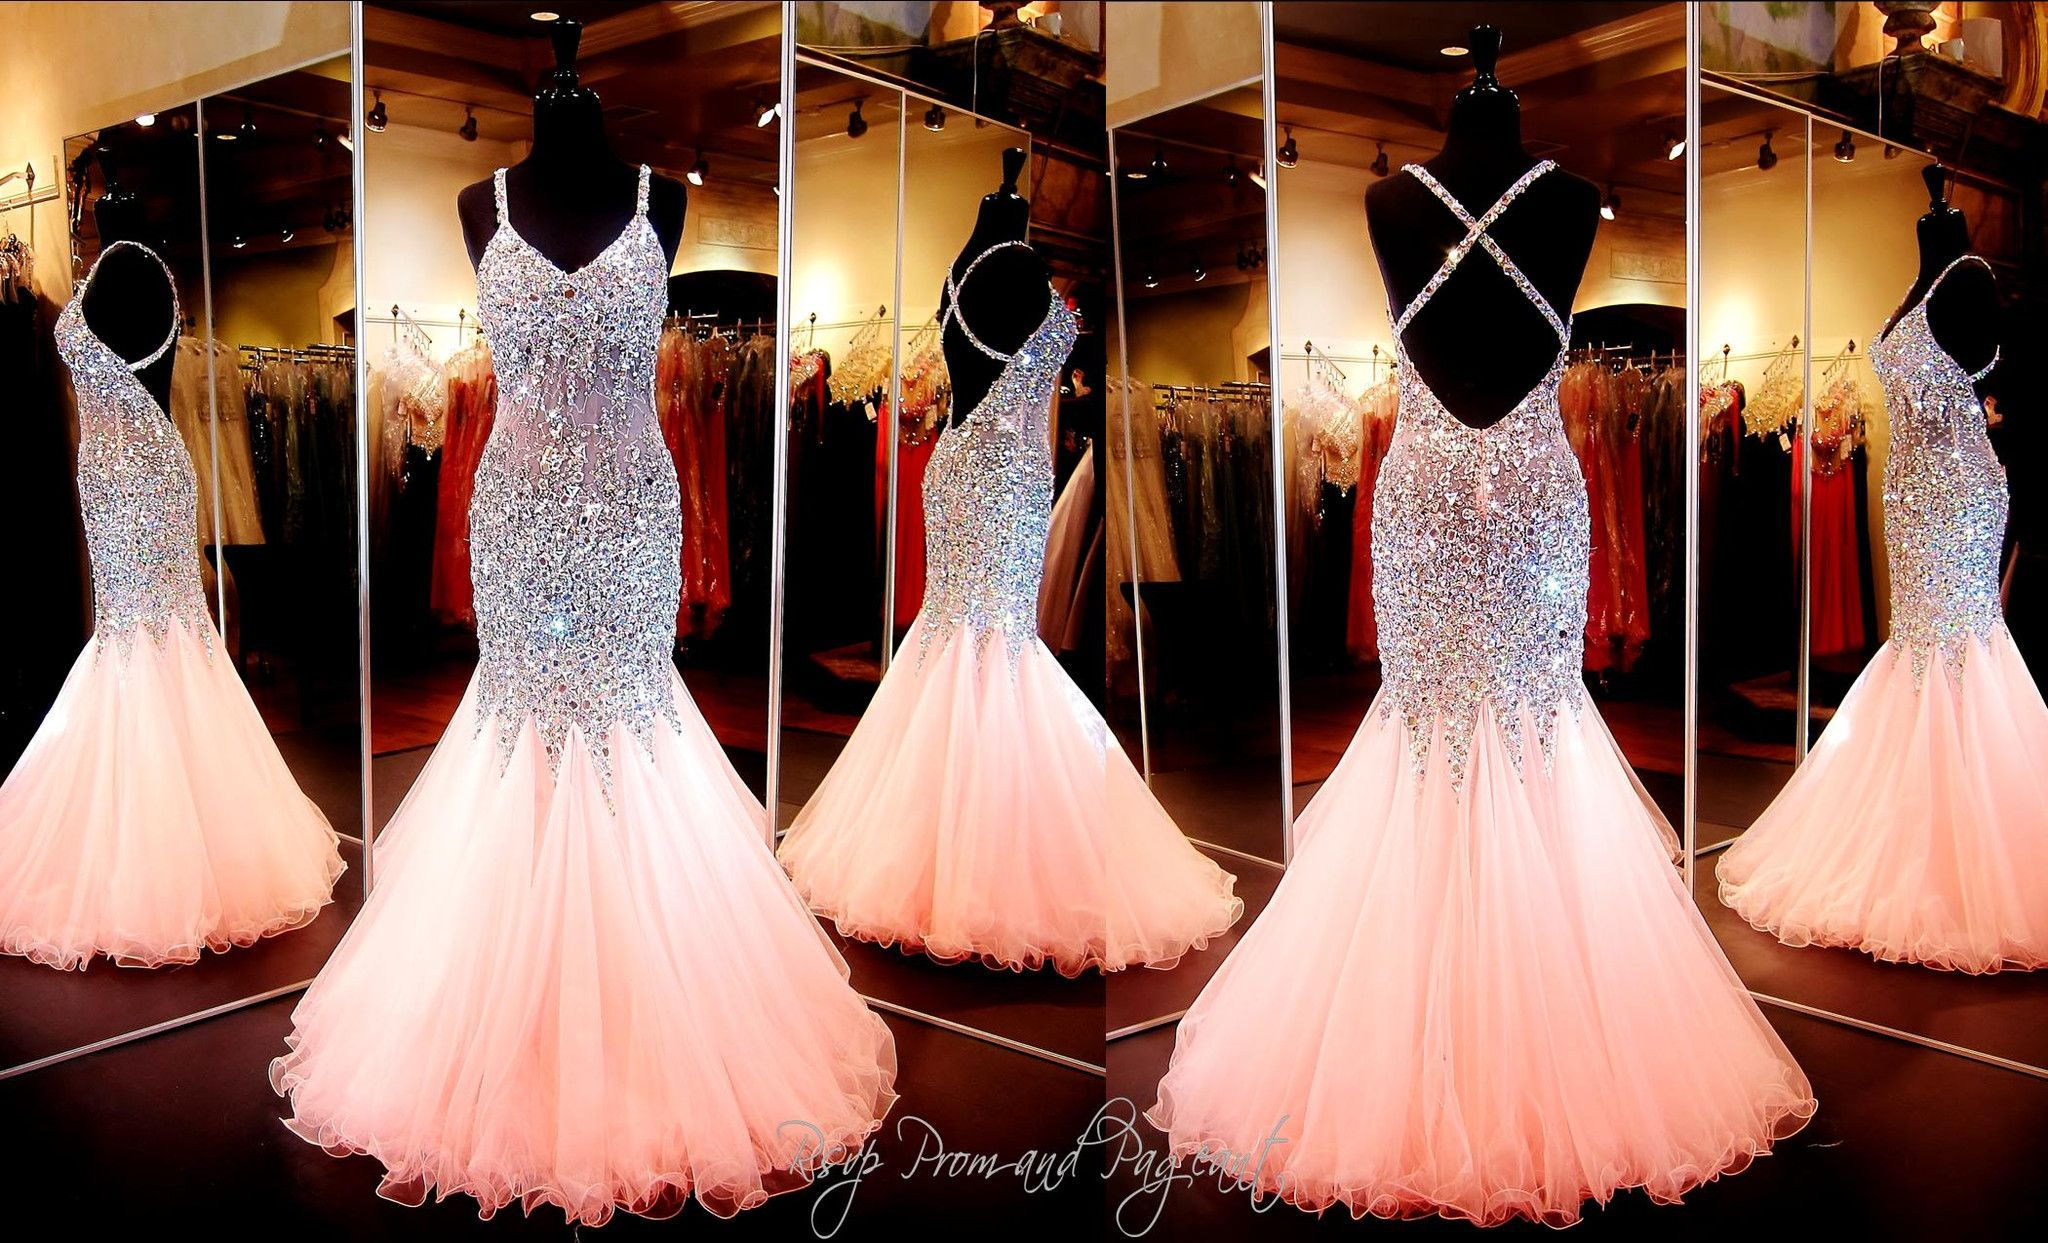 Coral Beaded Mermaid Prom Dress Open Back ONLY At Rsvp And Pageant Atlanta GA This Is A MUST HAVE The Beads Stones Jewels